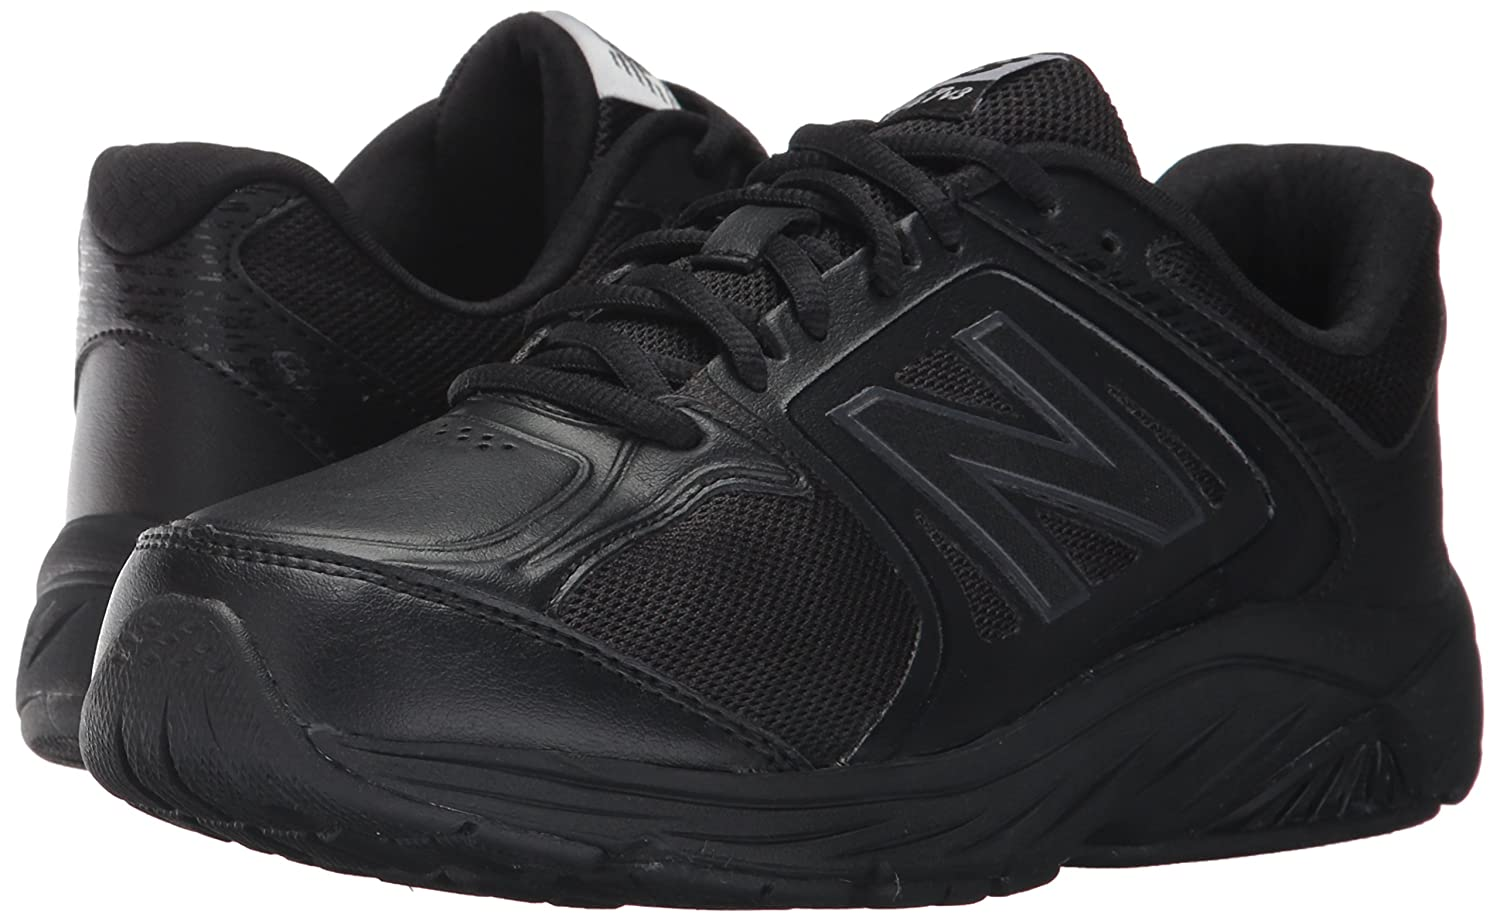 New Shoe Balance Women's 847v3 Walking Shoe New B01N97A6P4 10.5 B(M) US|Black/Black 65cf57